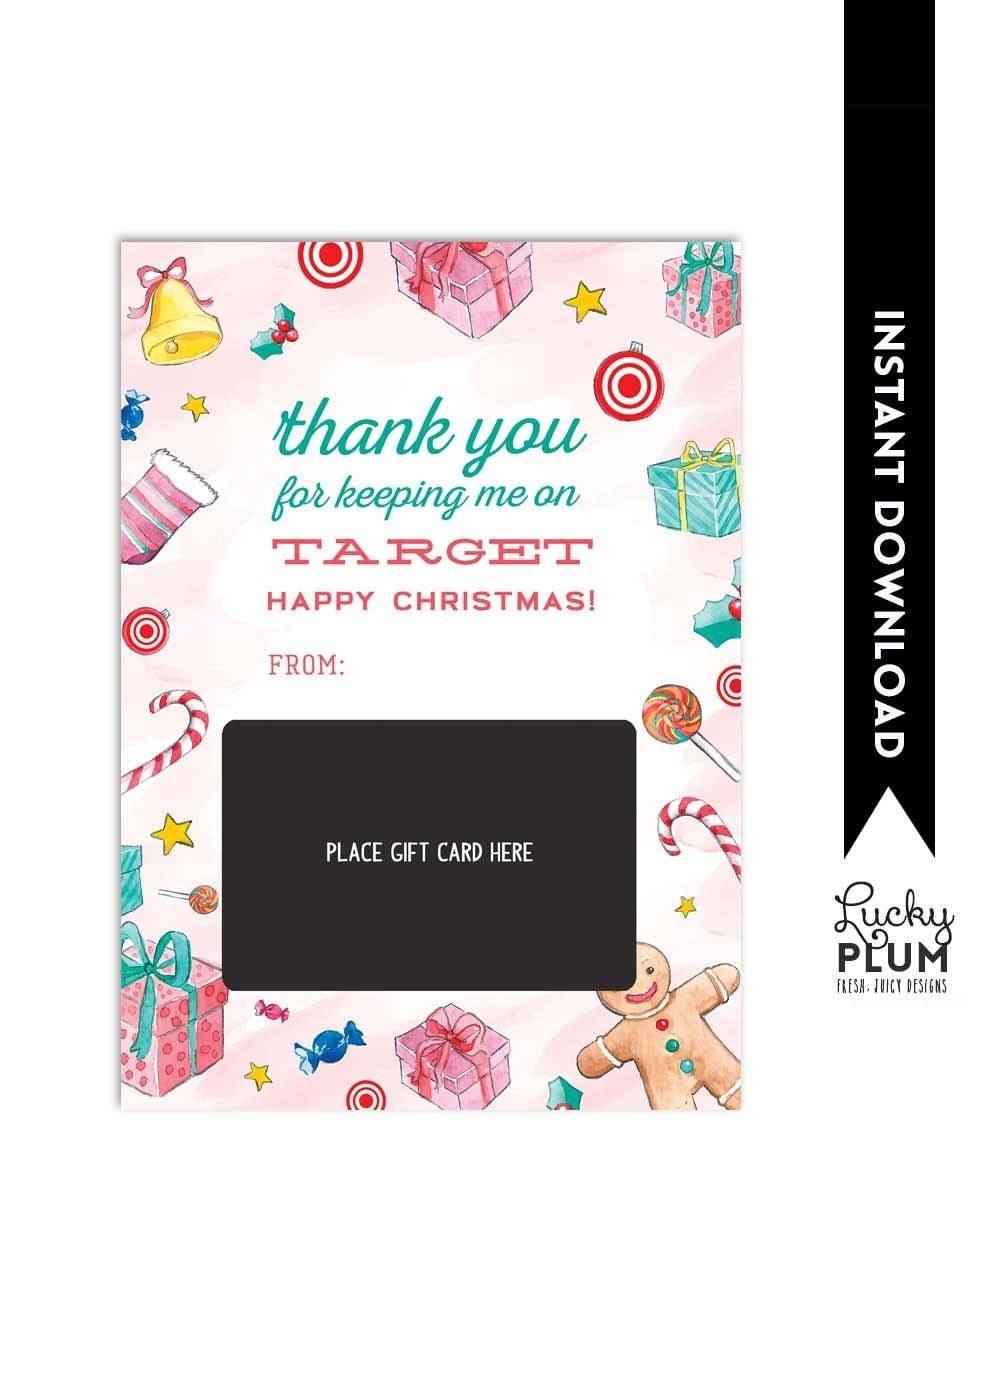 Target Gift Card Holder / Target Holiday Thank You Card /   Etsy